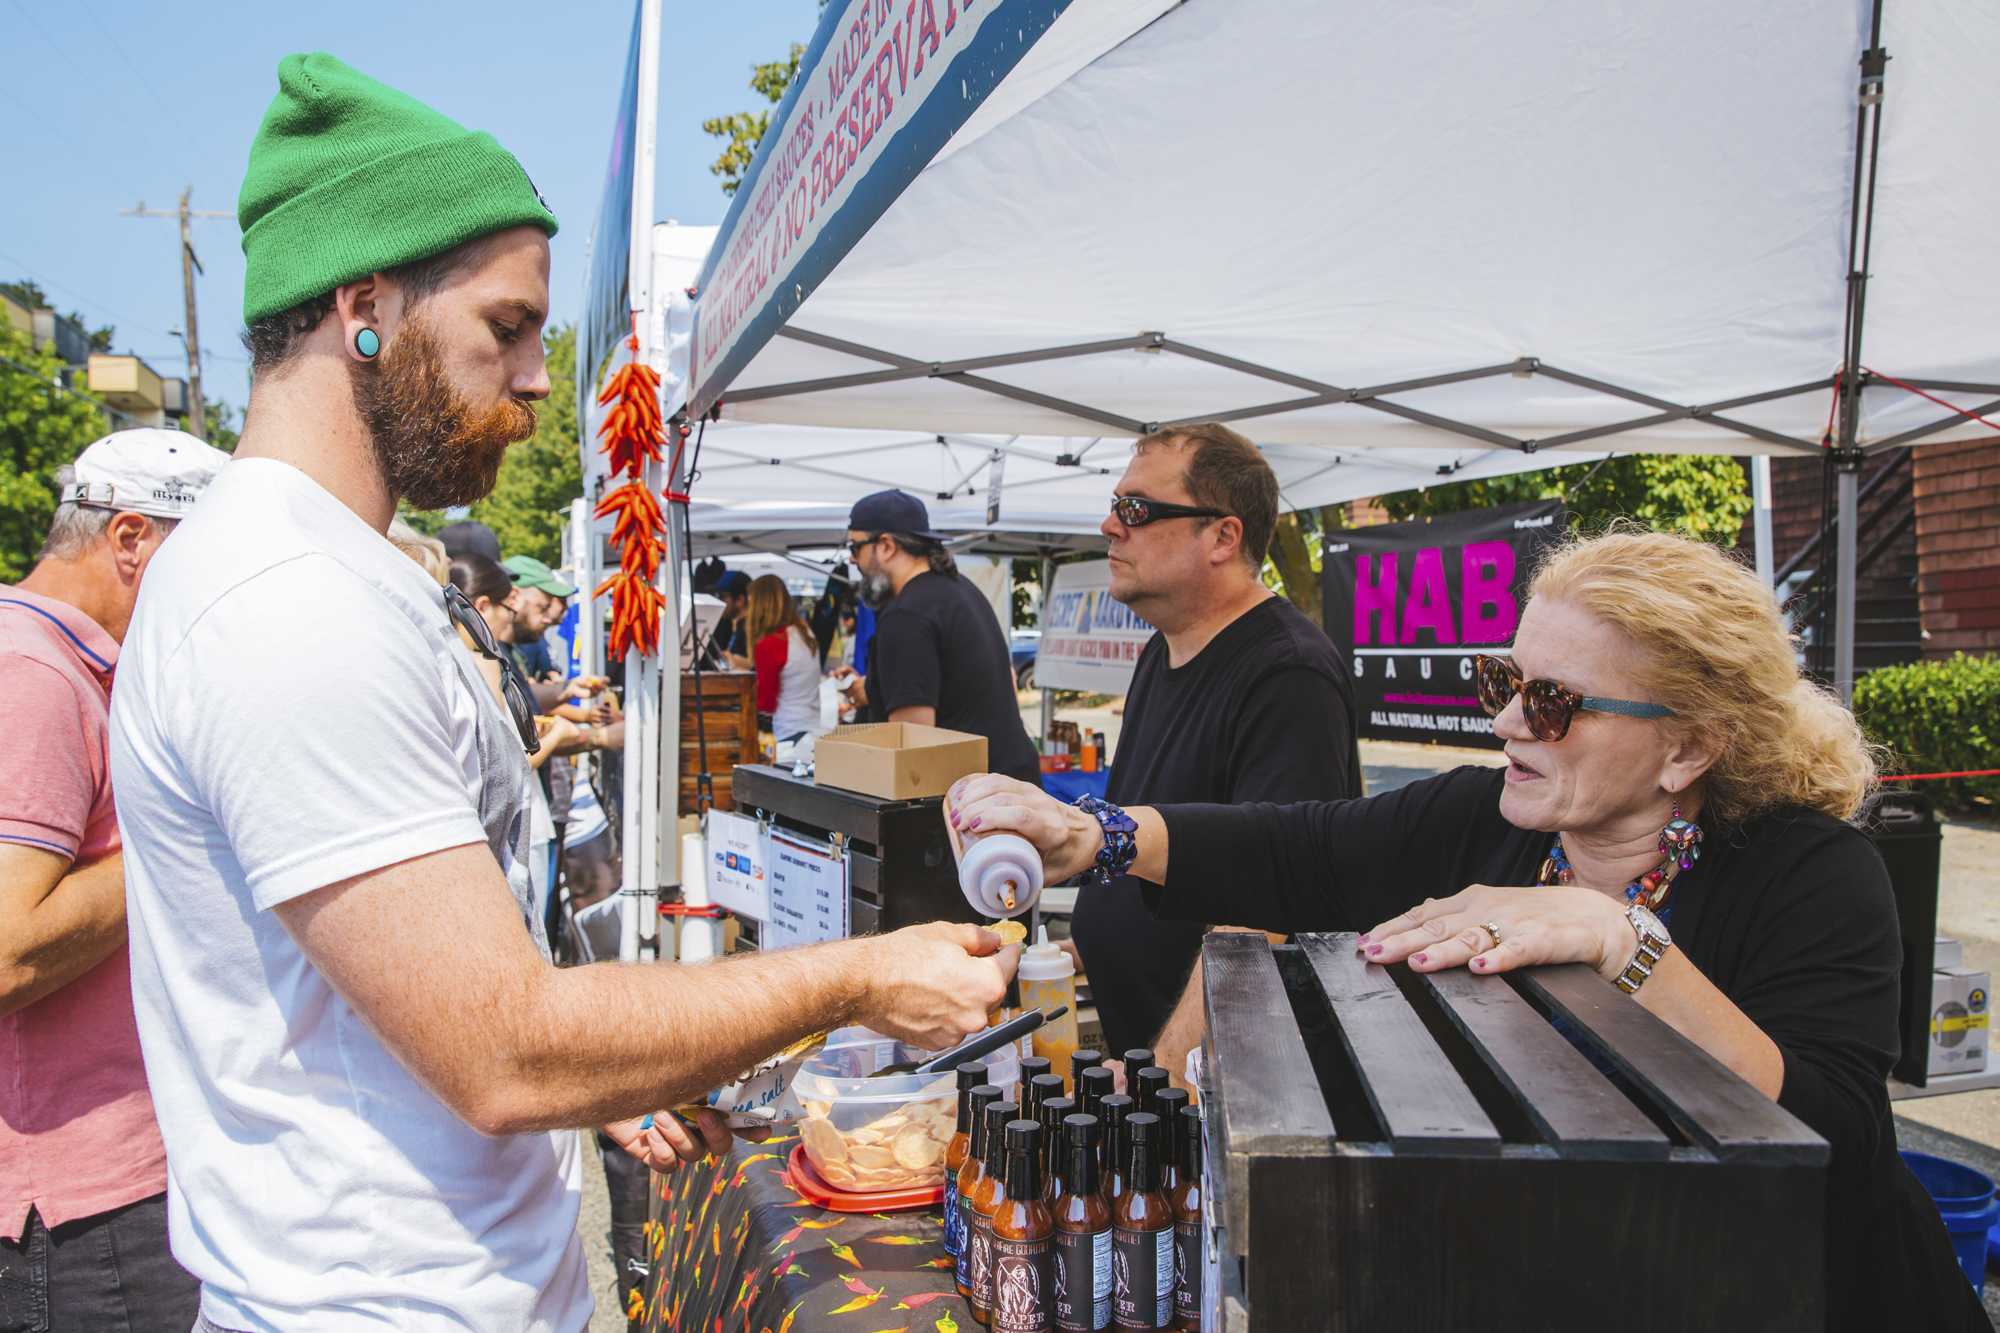 Seattle's *hottest* festival popped up this Saturday, August 18 at Ballard Commons Park and it was hot, hot, HOT! The Hot Sauce Fest featured some of the best hot sauces, food trucks and entertainment. Festival goers washed down the hot sauce burn with beers from Diamond Knot Craft Brewing and cocktails from Heritage Distilling Company (Image: Sunita Martini / Seattle Refined).